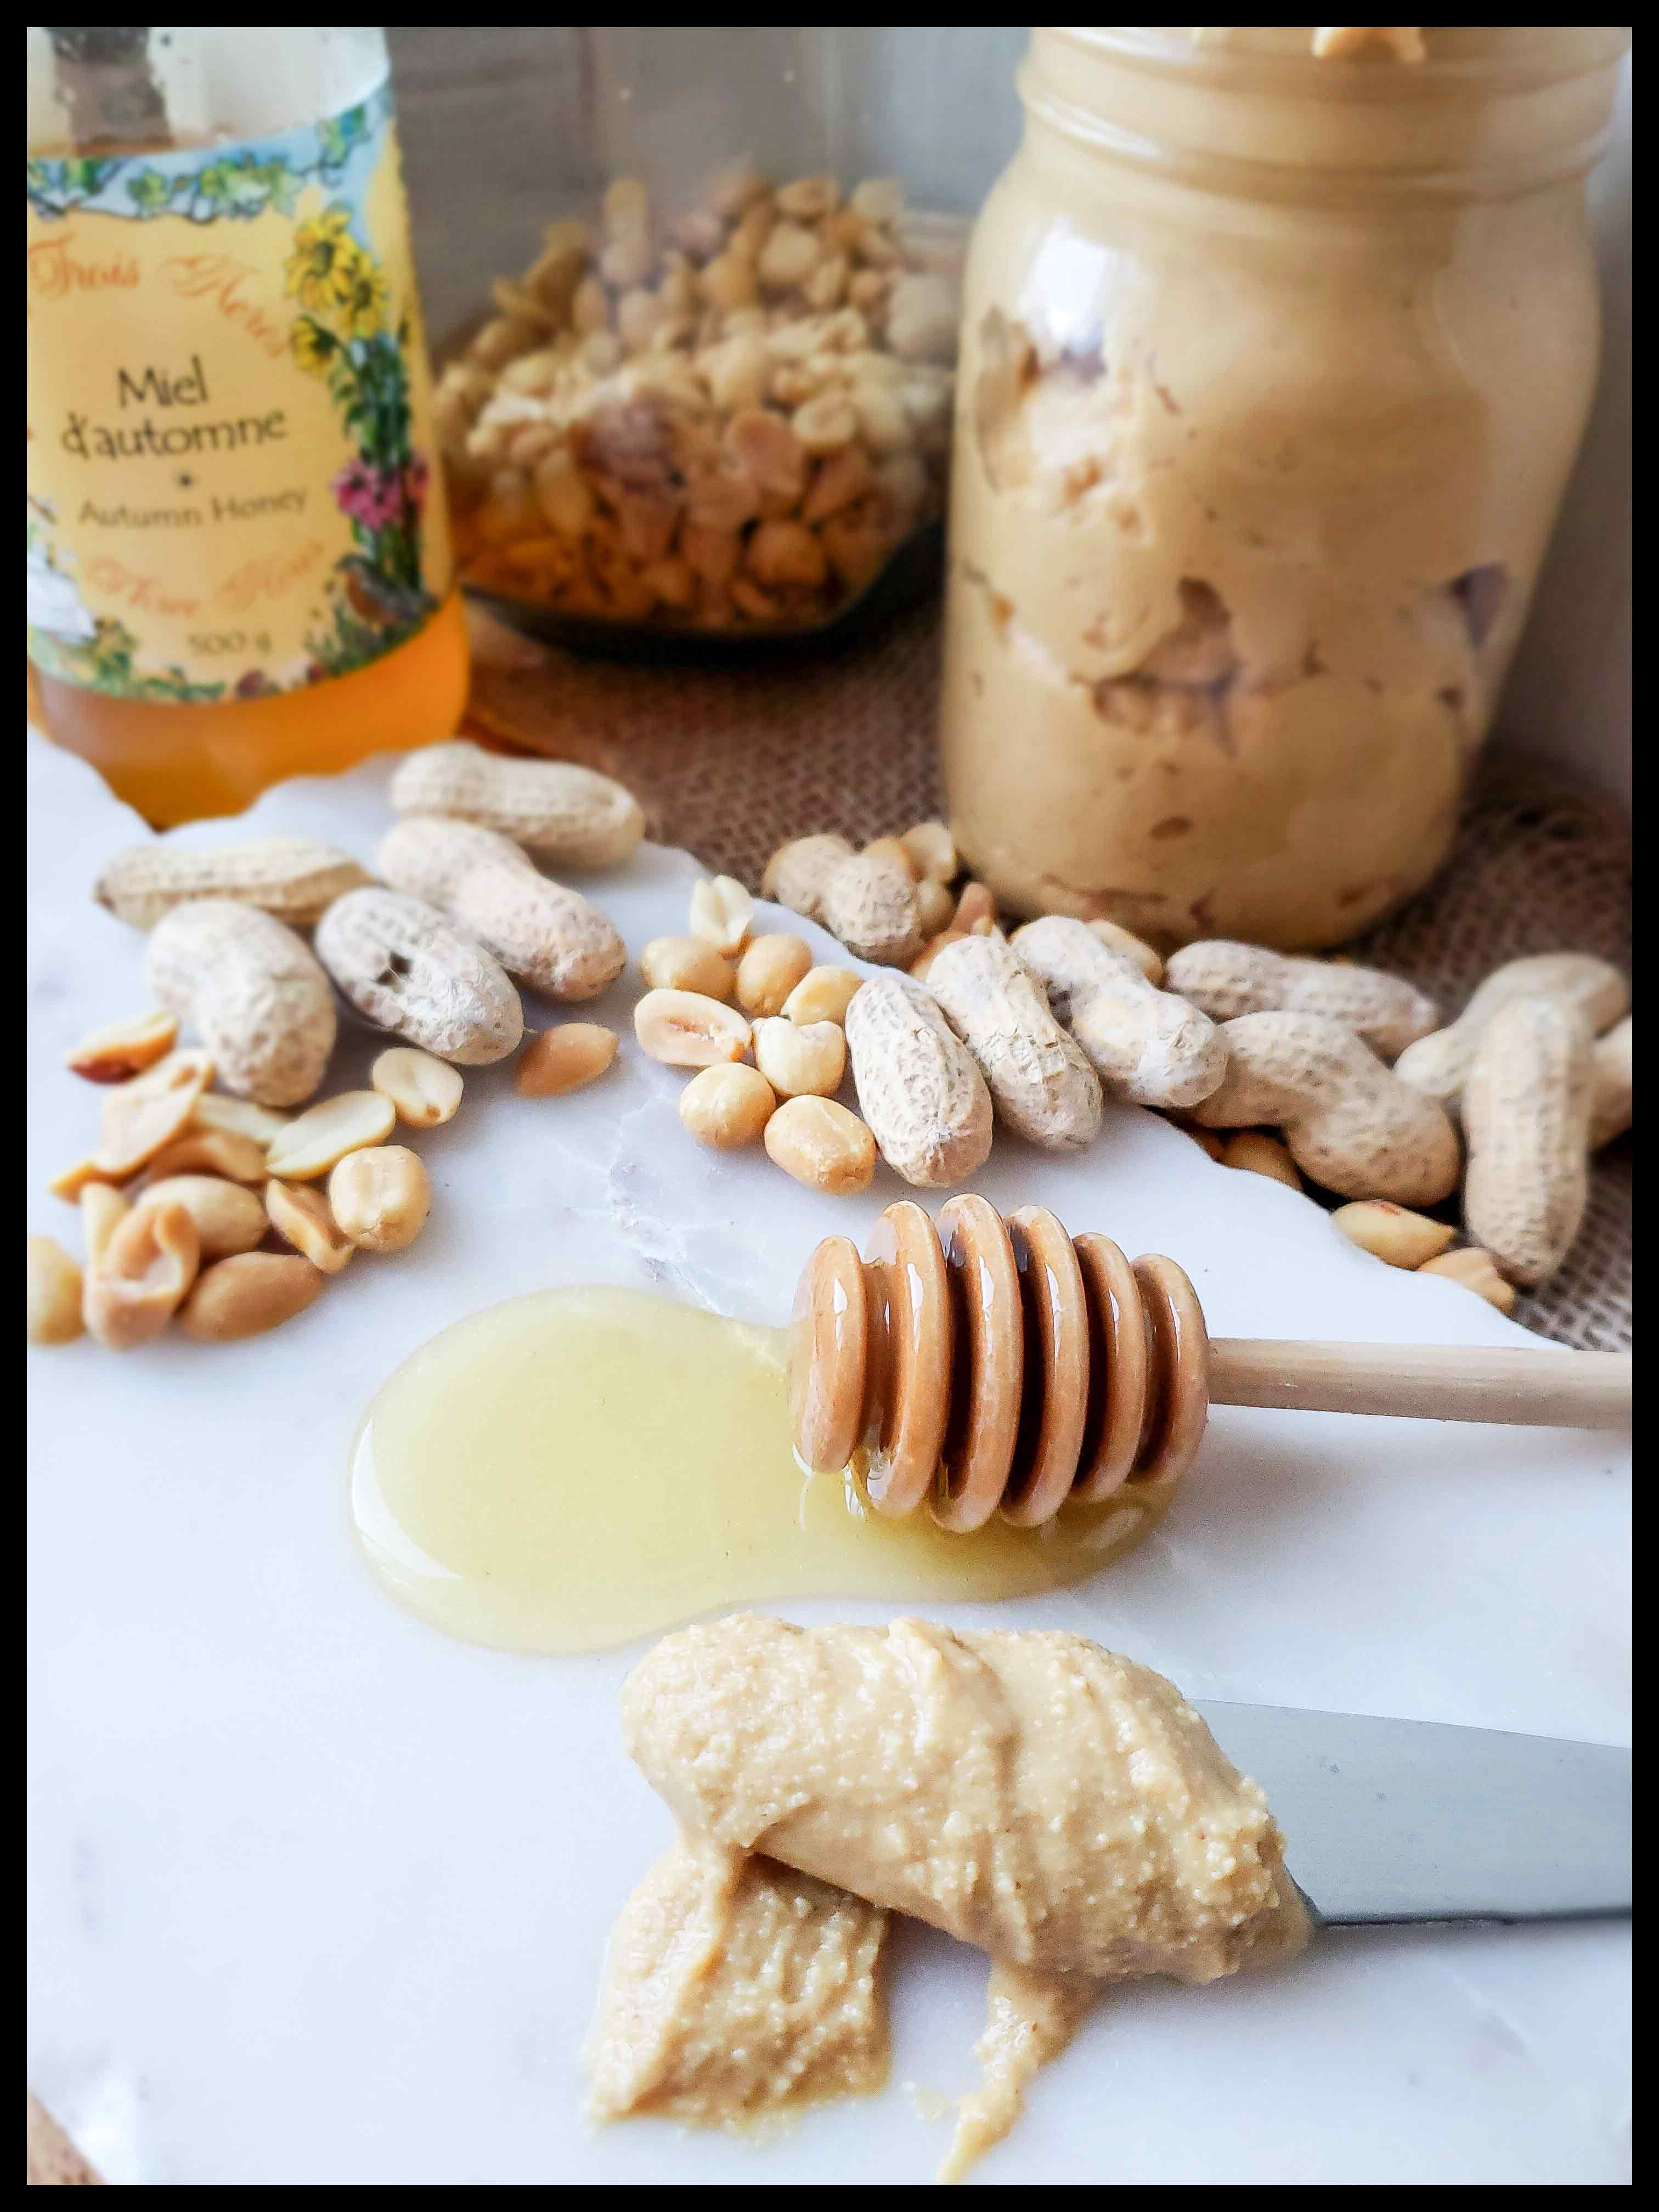 Peanuts and Autumn Honey